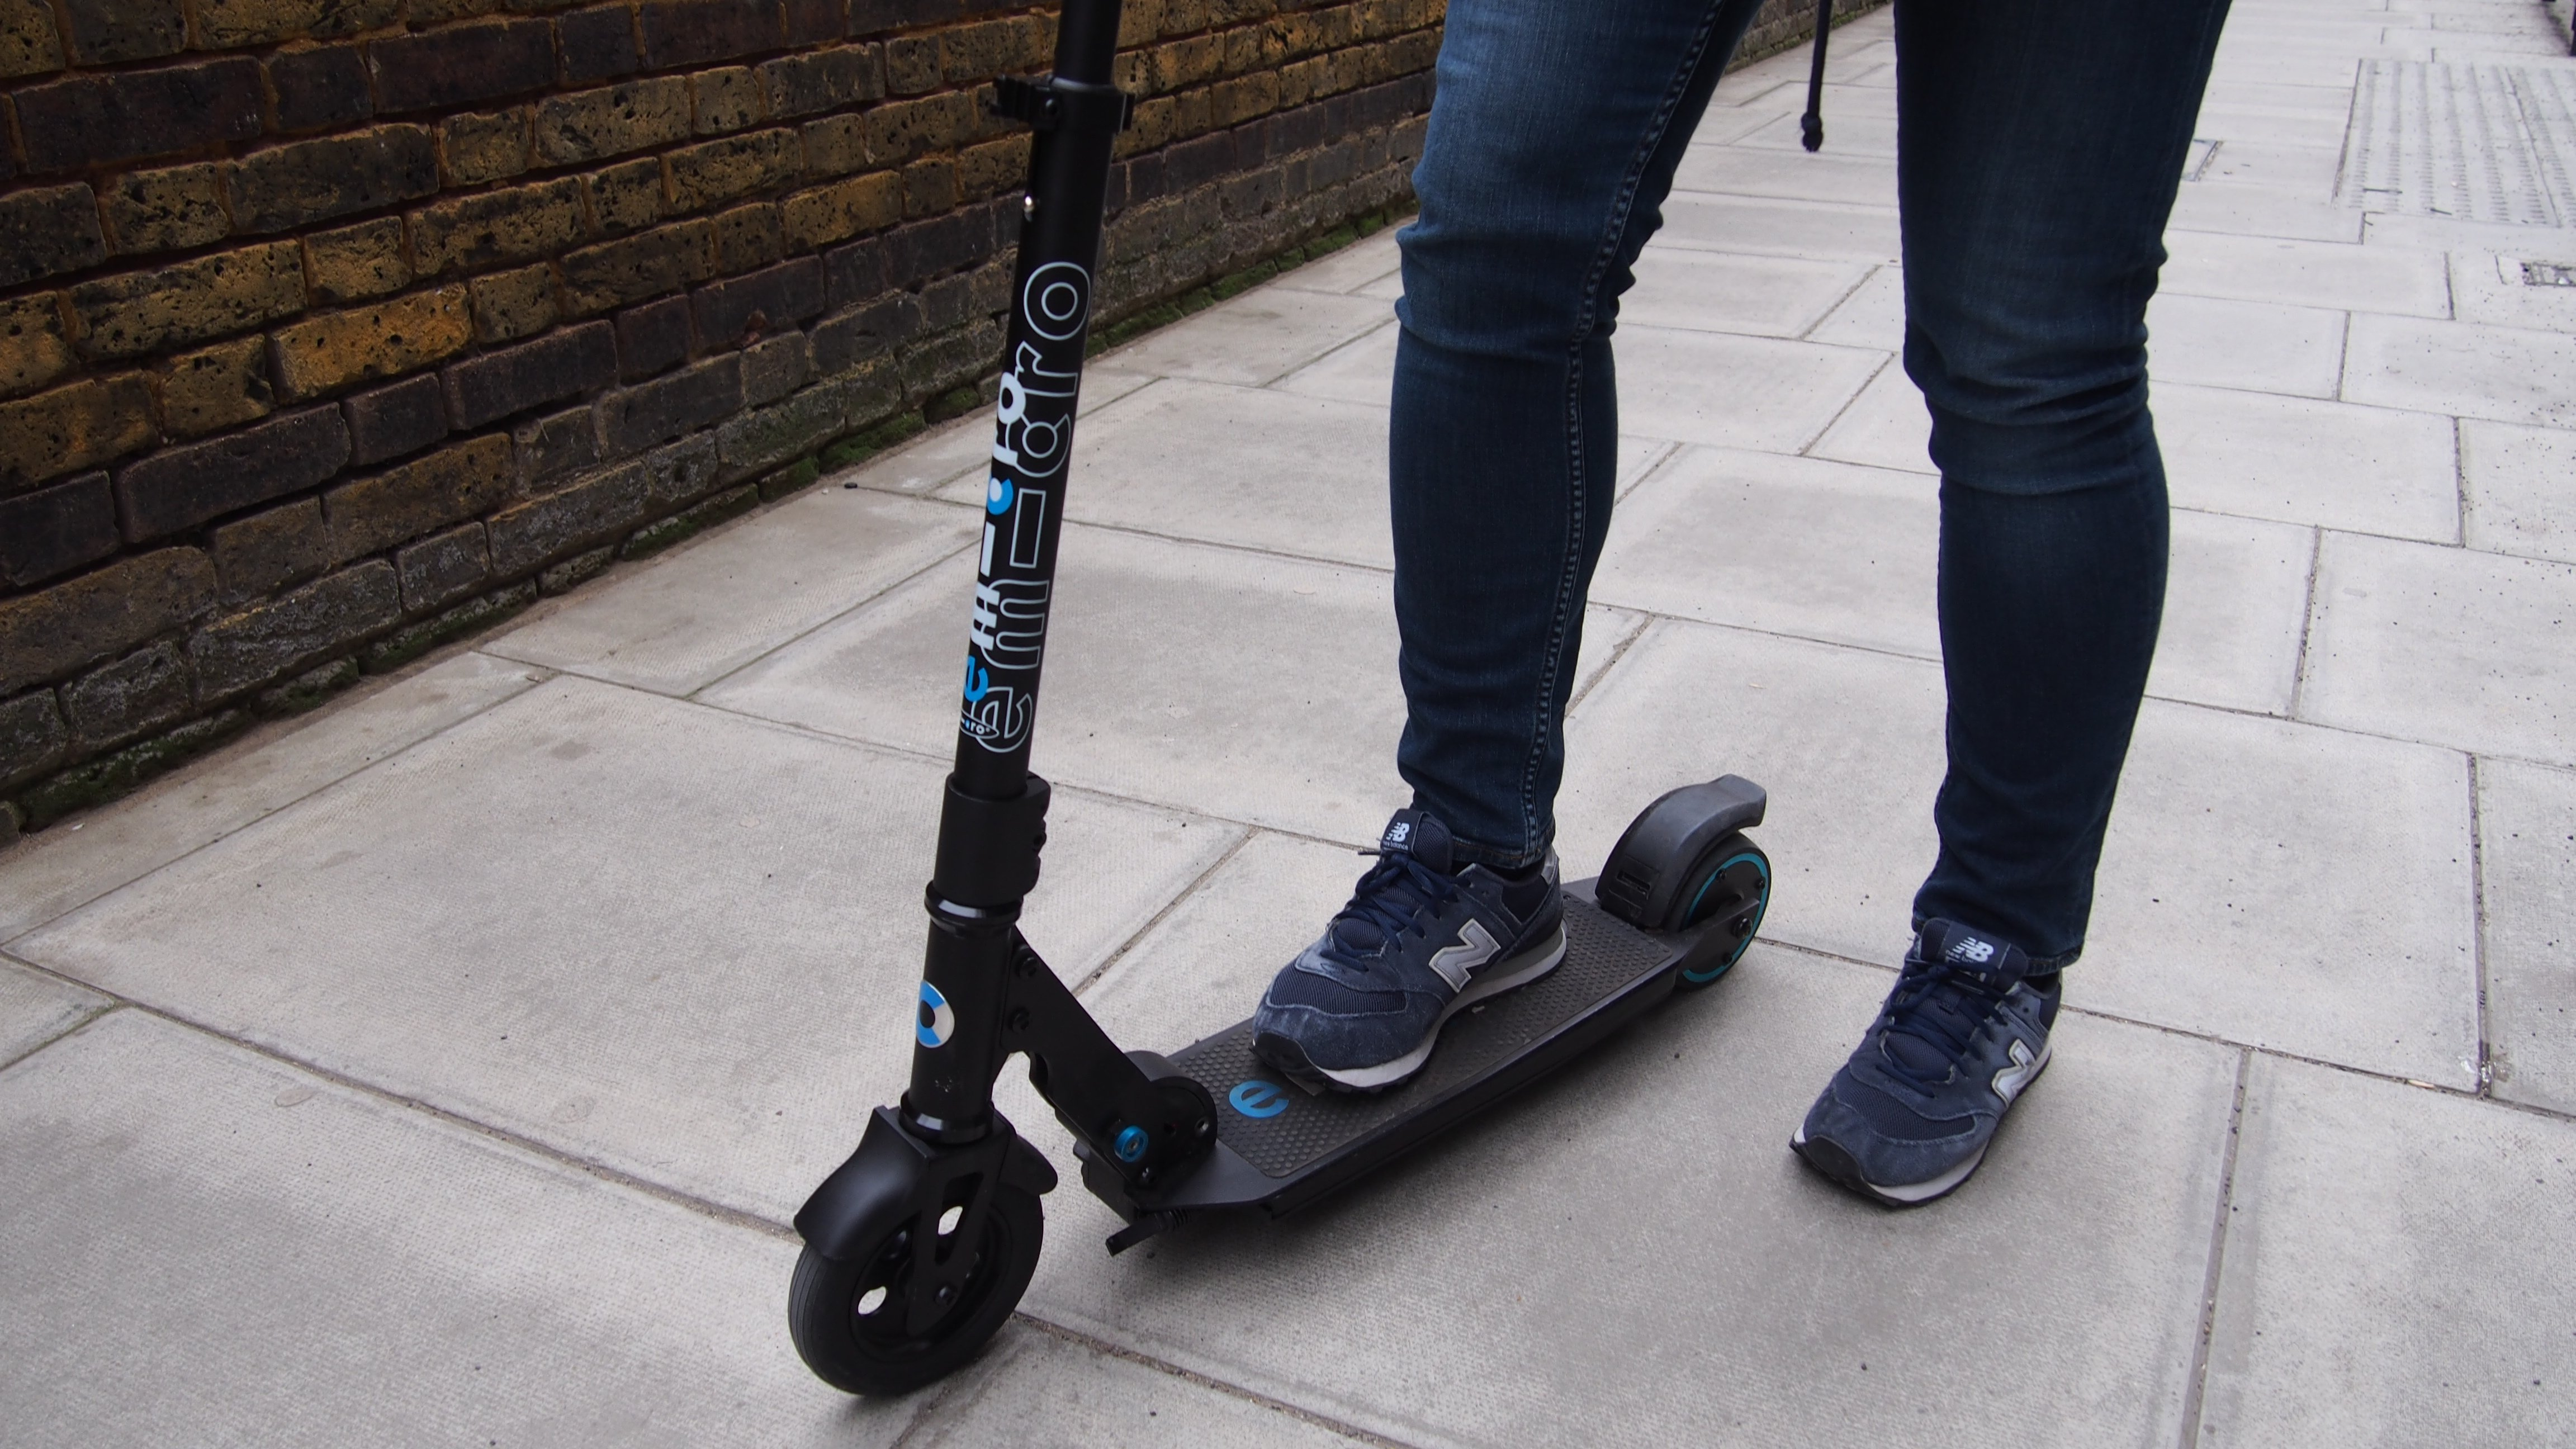 Emicro One Scooter Review One Day All Scooters Will Be